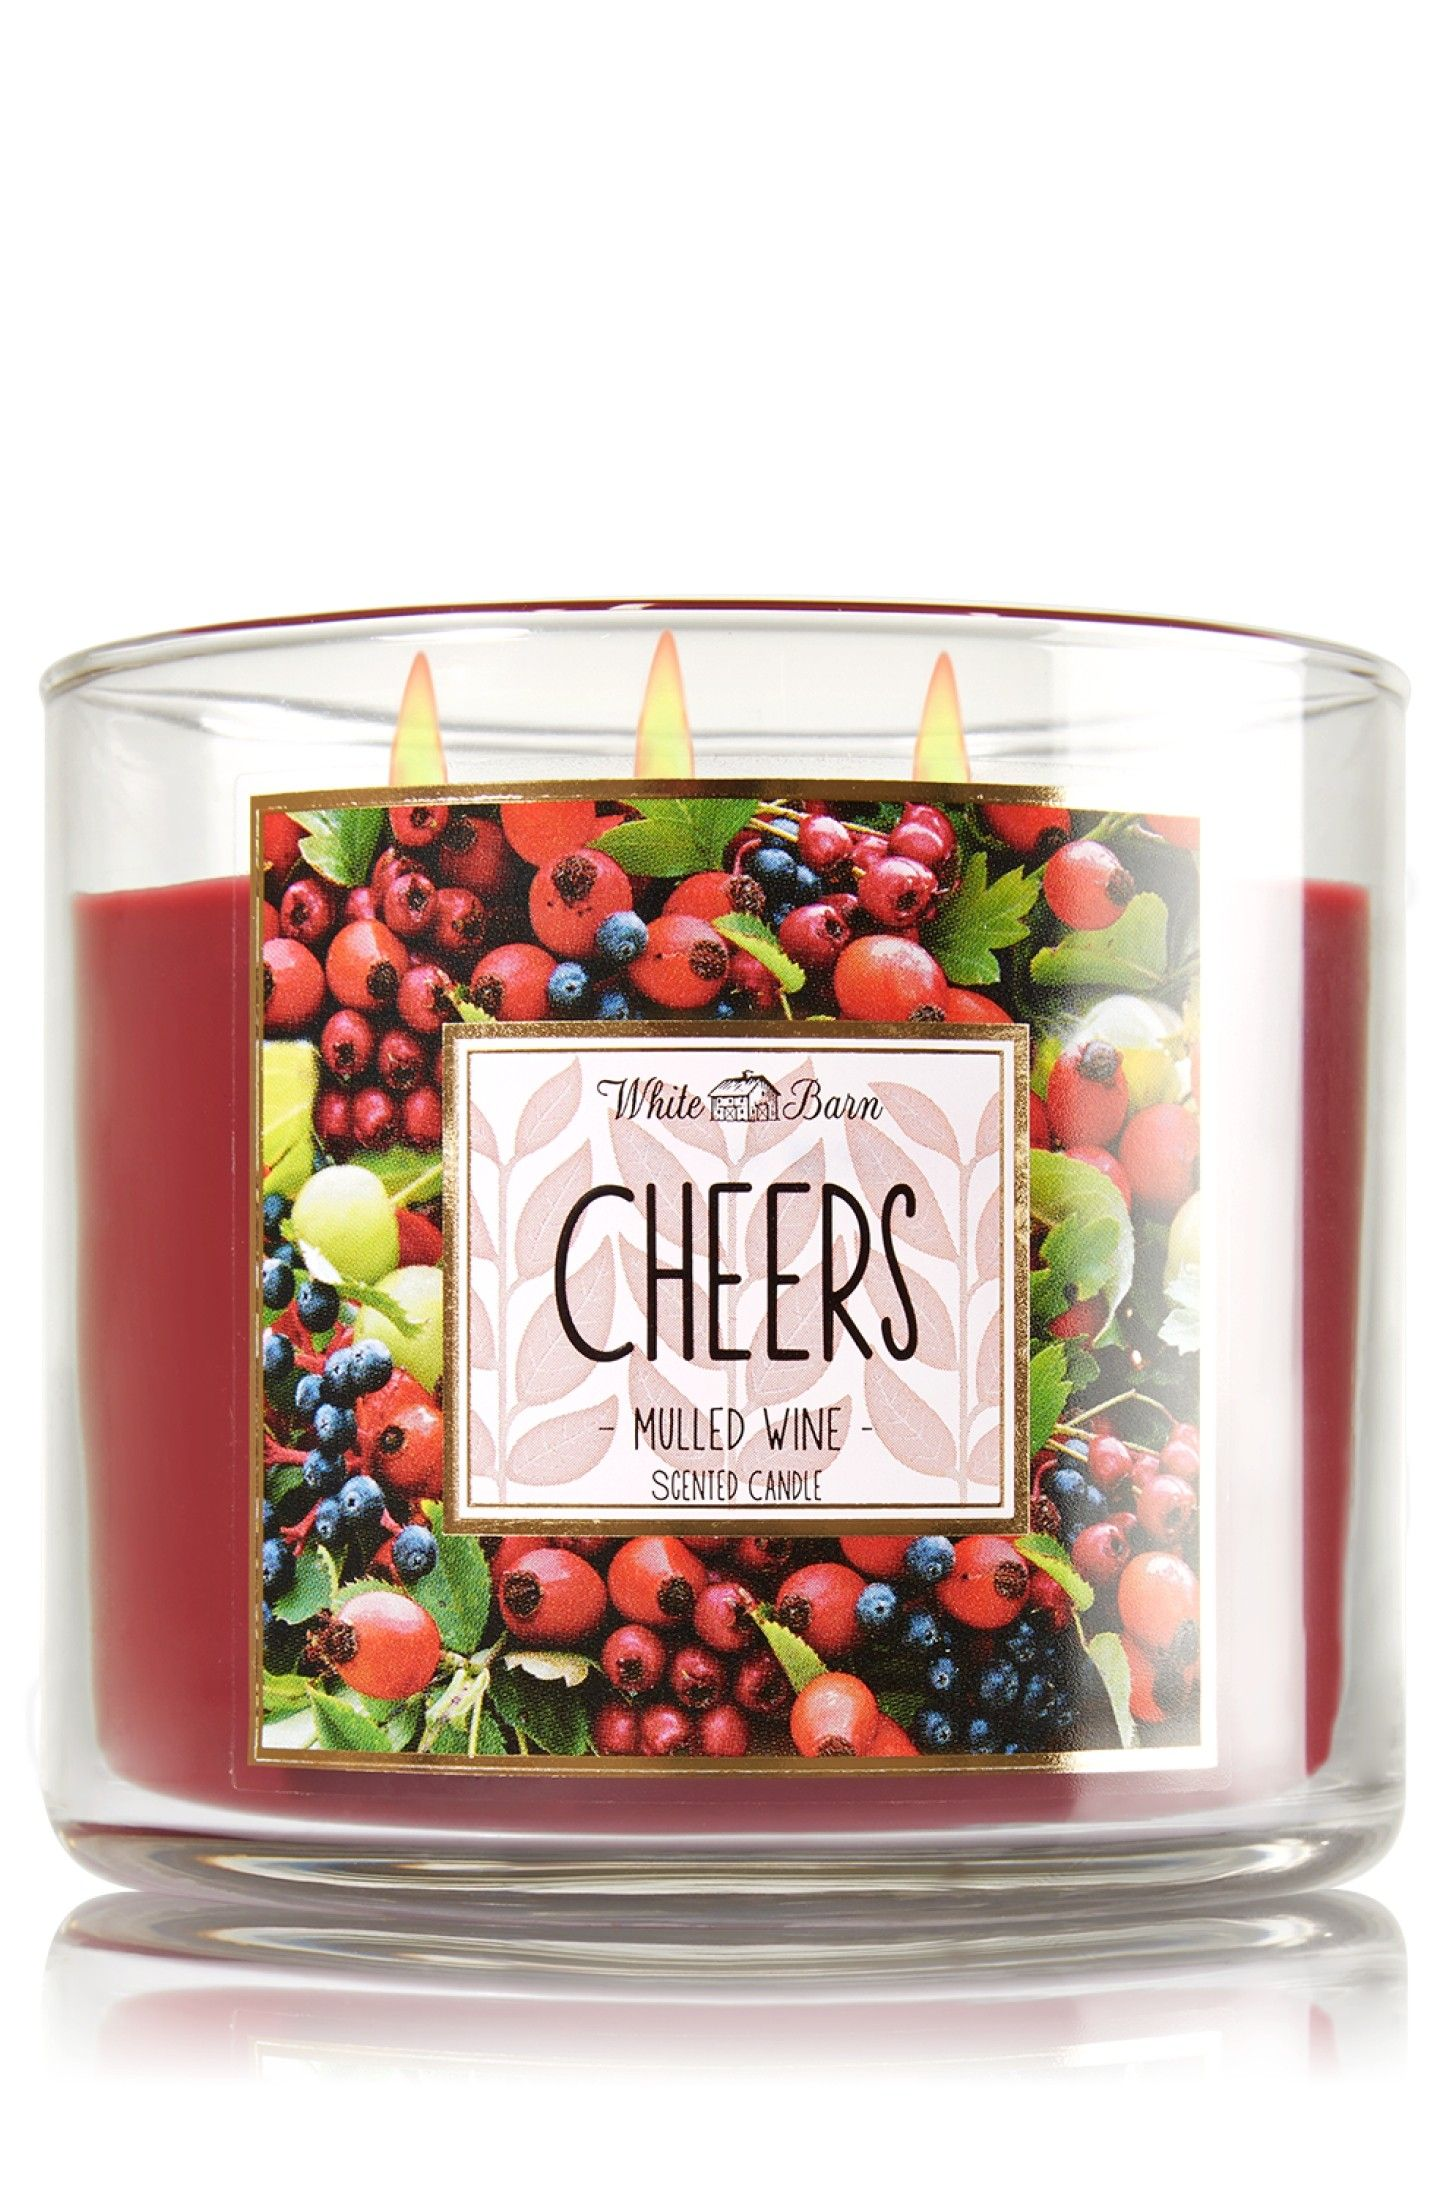 Bath And Body Works Bougie Parfumee 3 Meches Cheers Mulled Wine Bougie Parfumee Bougie Meches